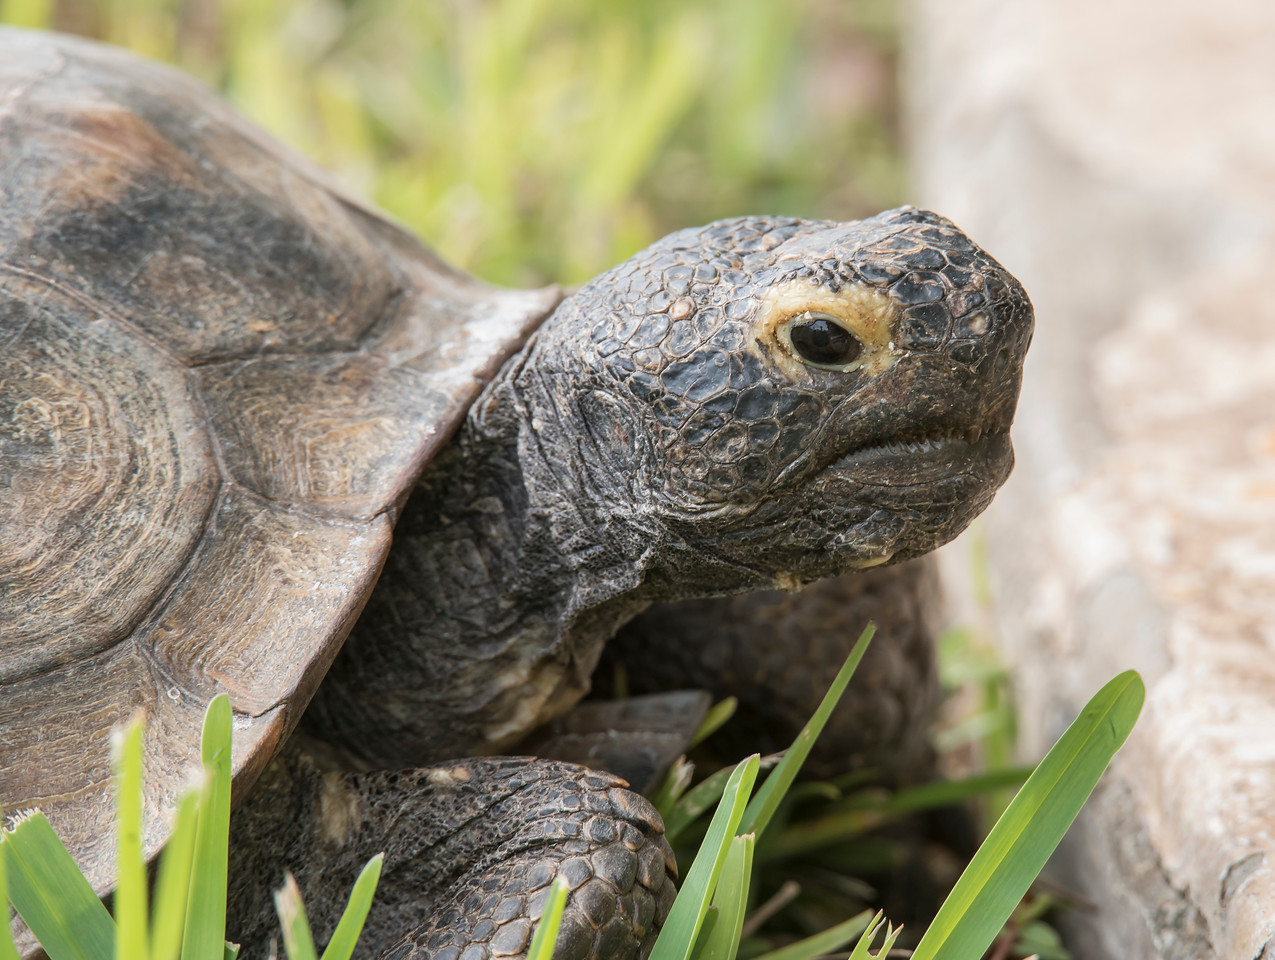 This is the second Tortoise that we saw.  You can tell this is a different one because it has a dark head and the other one had a light head.   Gopher Tortoises can live 40 to 60 years in the wild and don't start reproducing until they are 10 to 25 years old.  They lay from 3 to 15 eggs and bury them at the entrance to their burrows.  That exposes the eggs to the sun and keeps them warm but also makes the eggs vulnerable to predators.  It is estimated that only 3 – 5% of the young tortoises survive.